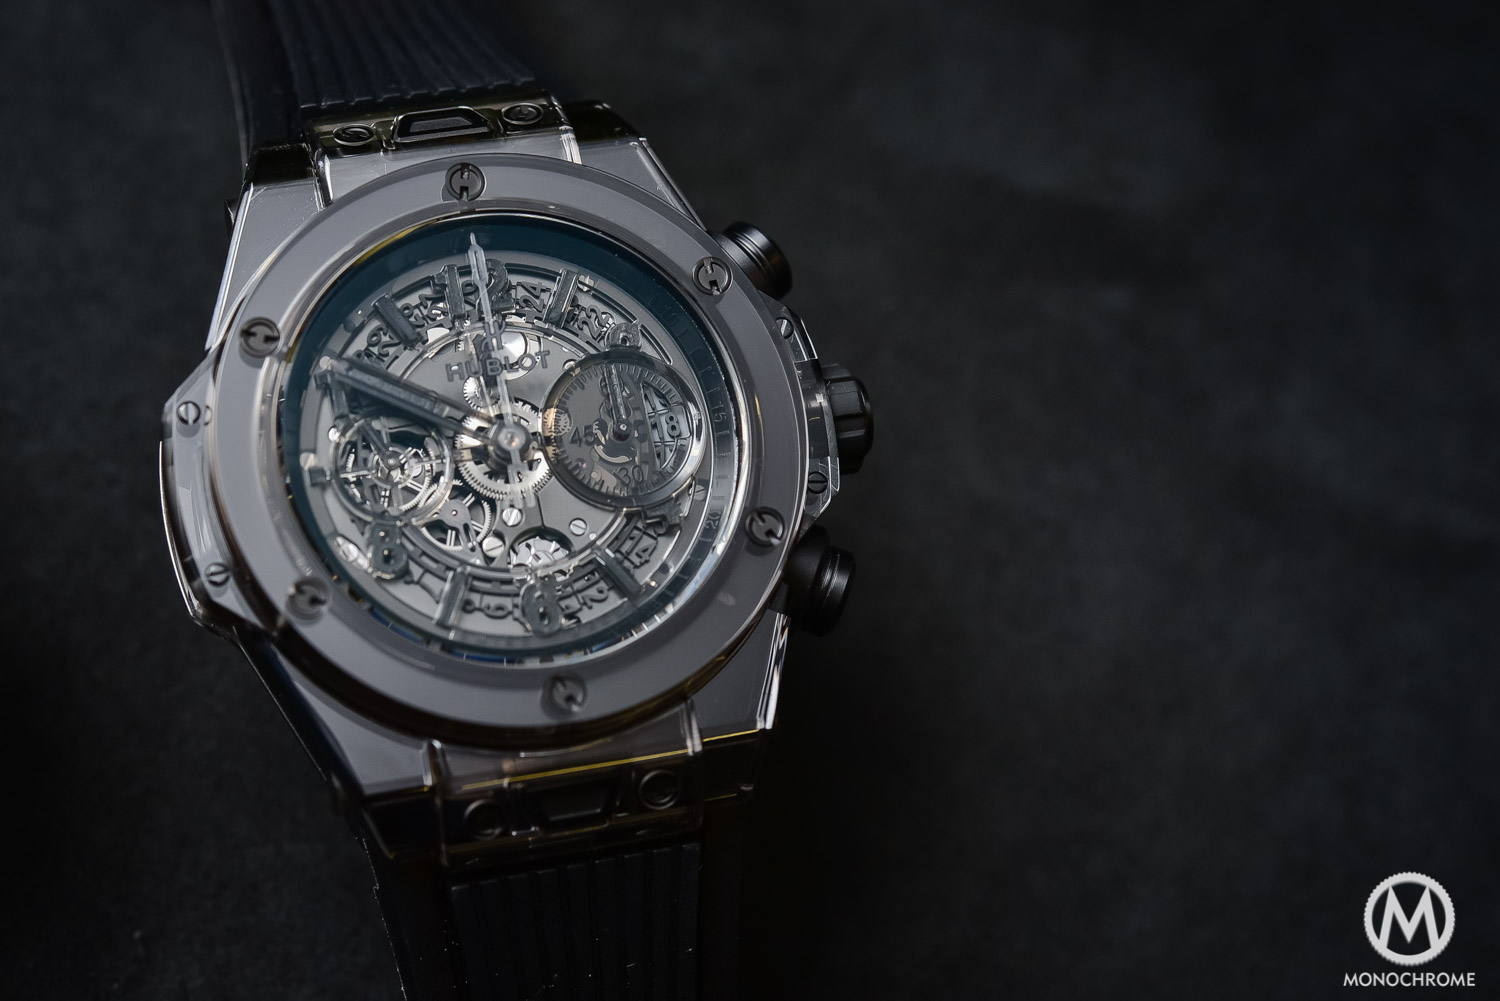 Hands On With The Very Monochrome Hublot Big Bang Unico Sapphire